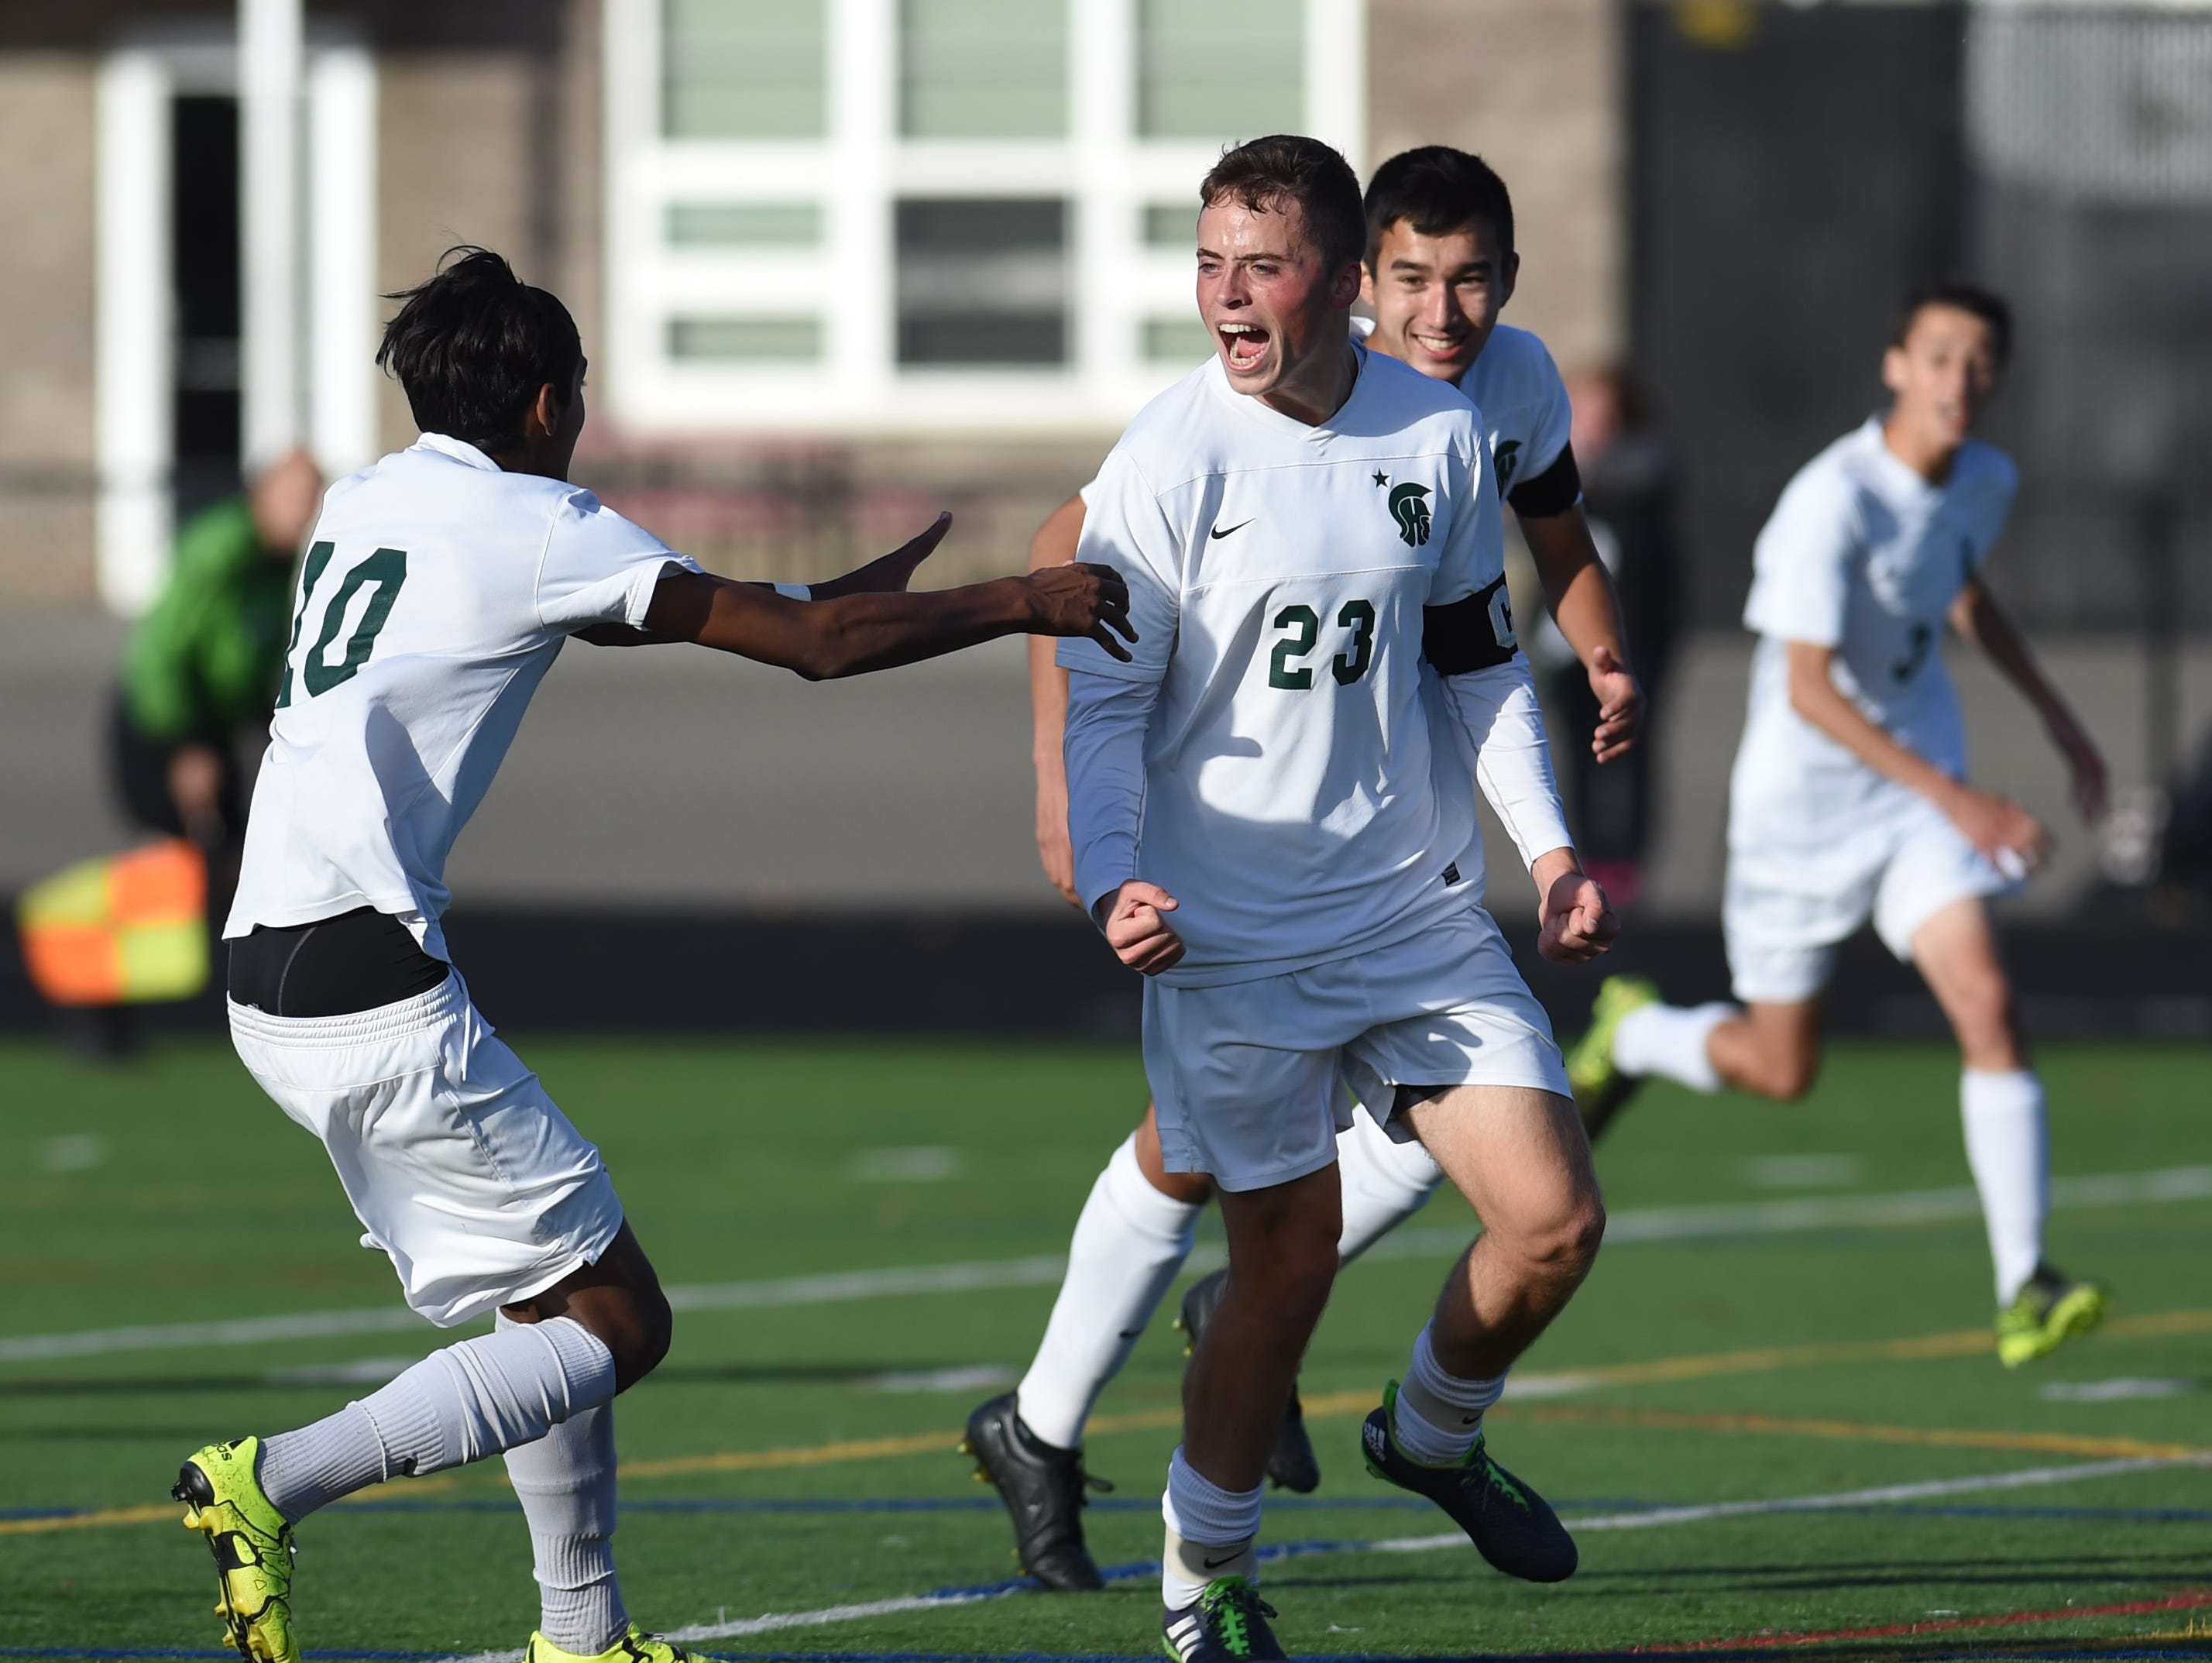 Spackenkill's Chris Stamper celebrates his goal during the Section 9 Class B final held in Marlboro on Saturday.